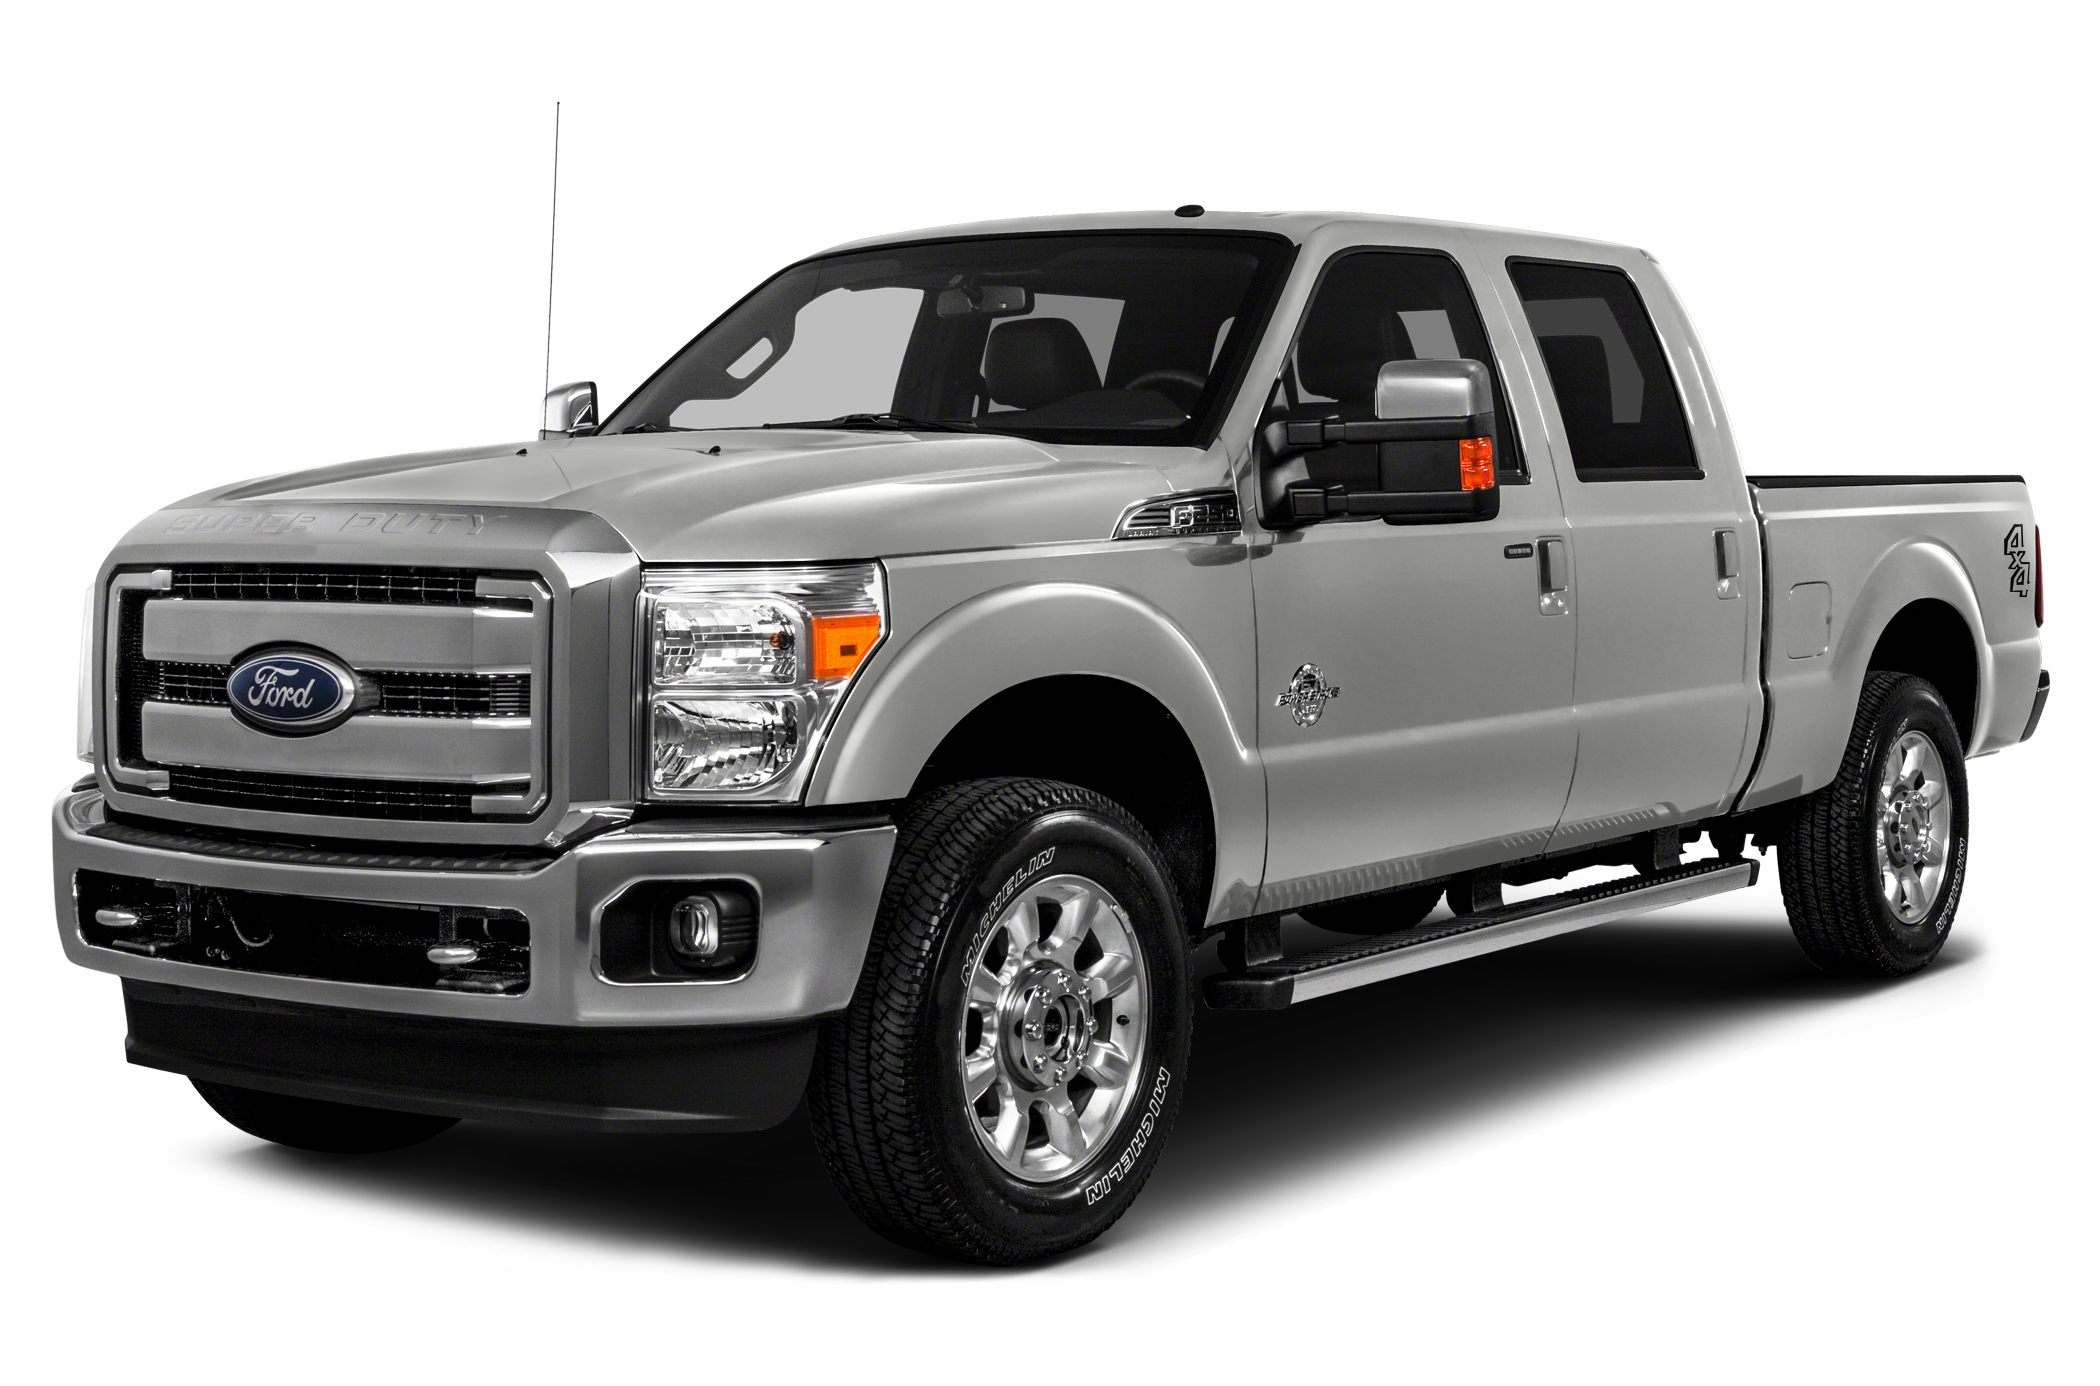 2013 Ford F-250 Platinum Ford Certified Pre-Owned 7 YEAR 100000 MILE FORD PRE-OWNED CERTIFIED